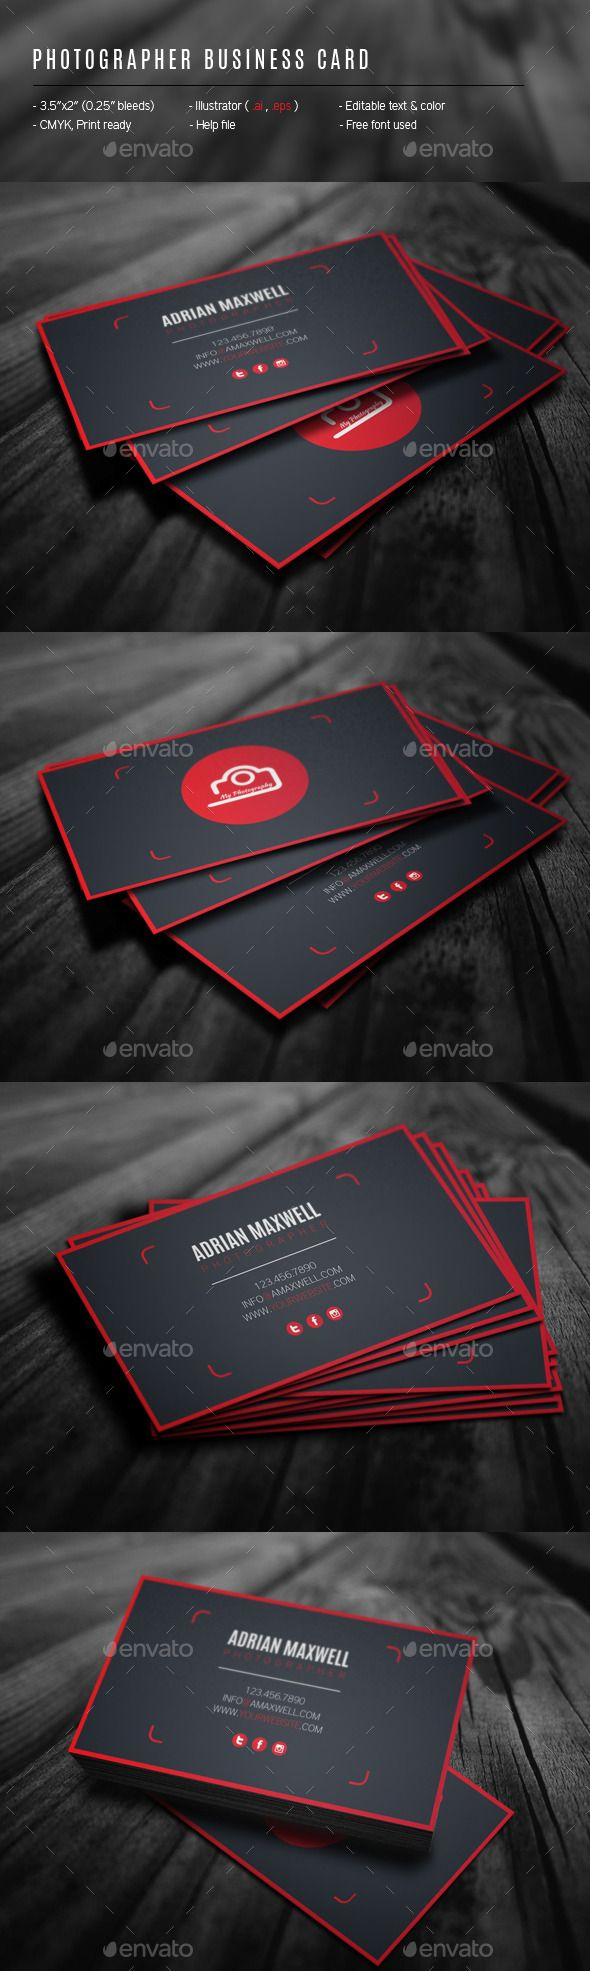 263 best business card images on pinterest business card design photographer business card reheart Choice Image